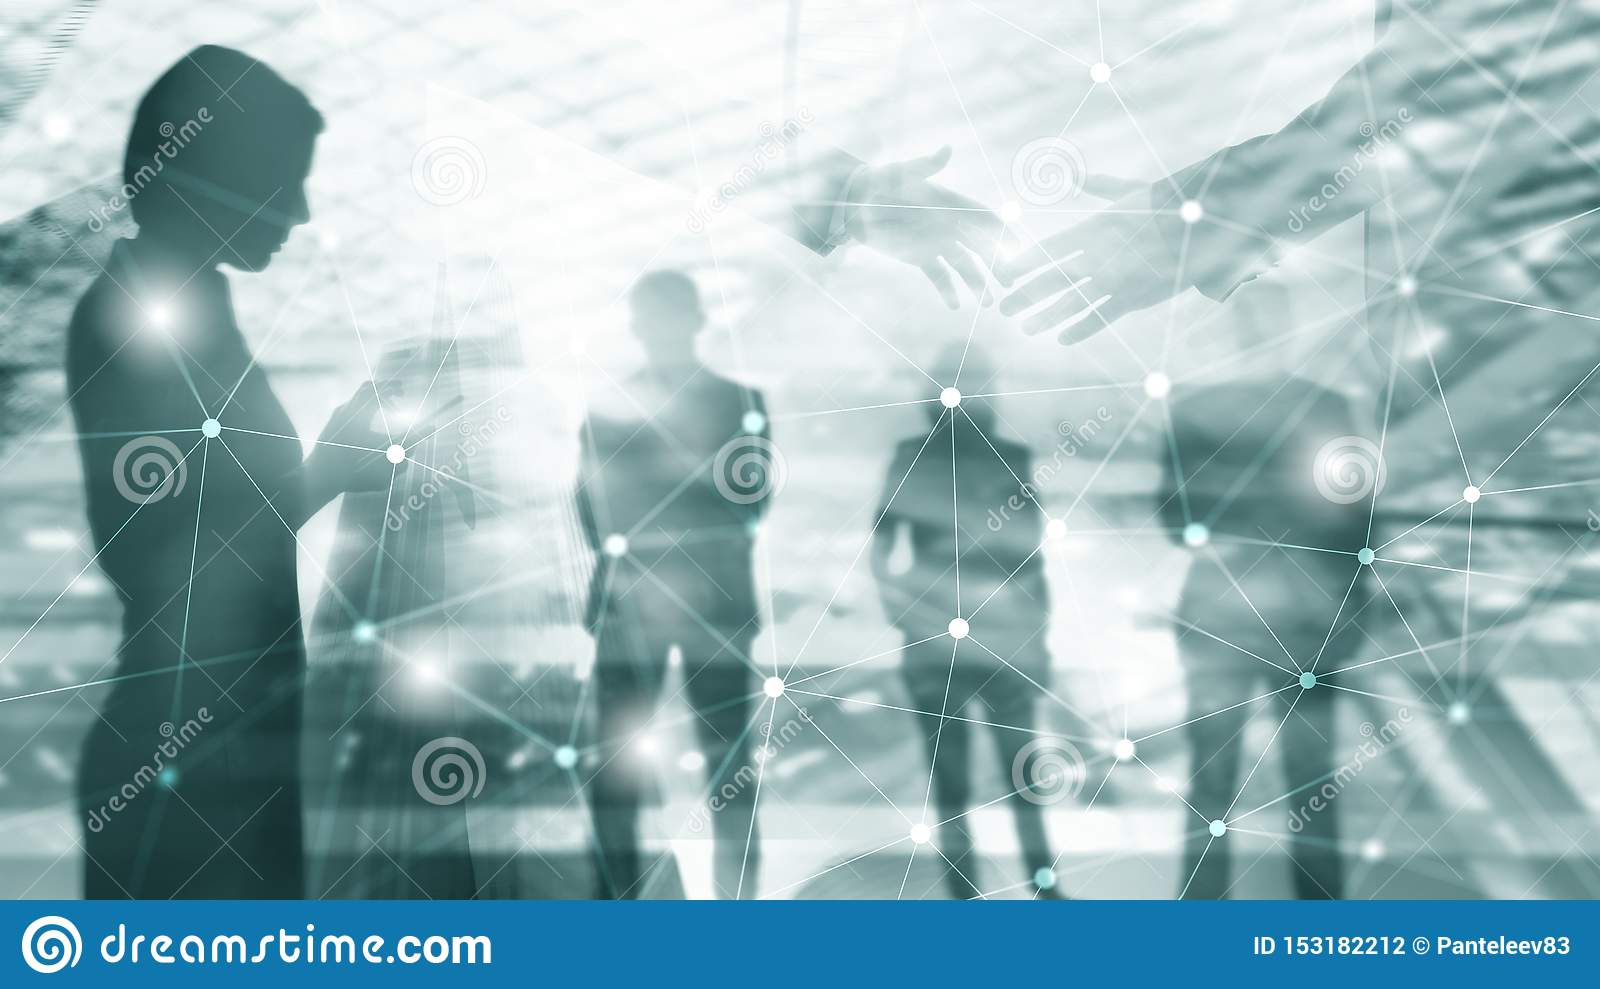 Silhouettes of Business People Over Cityscape Background. Corporate Lifestyle. Universal Wallpaper Concept